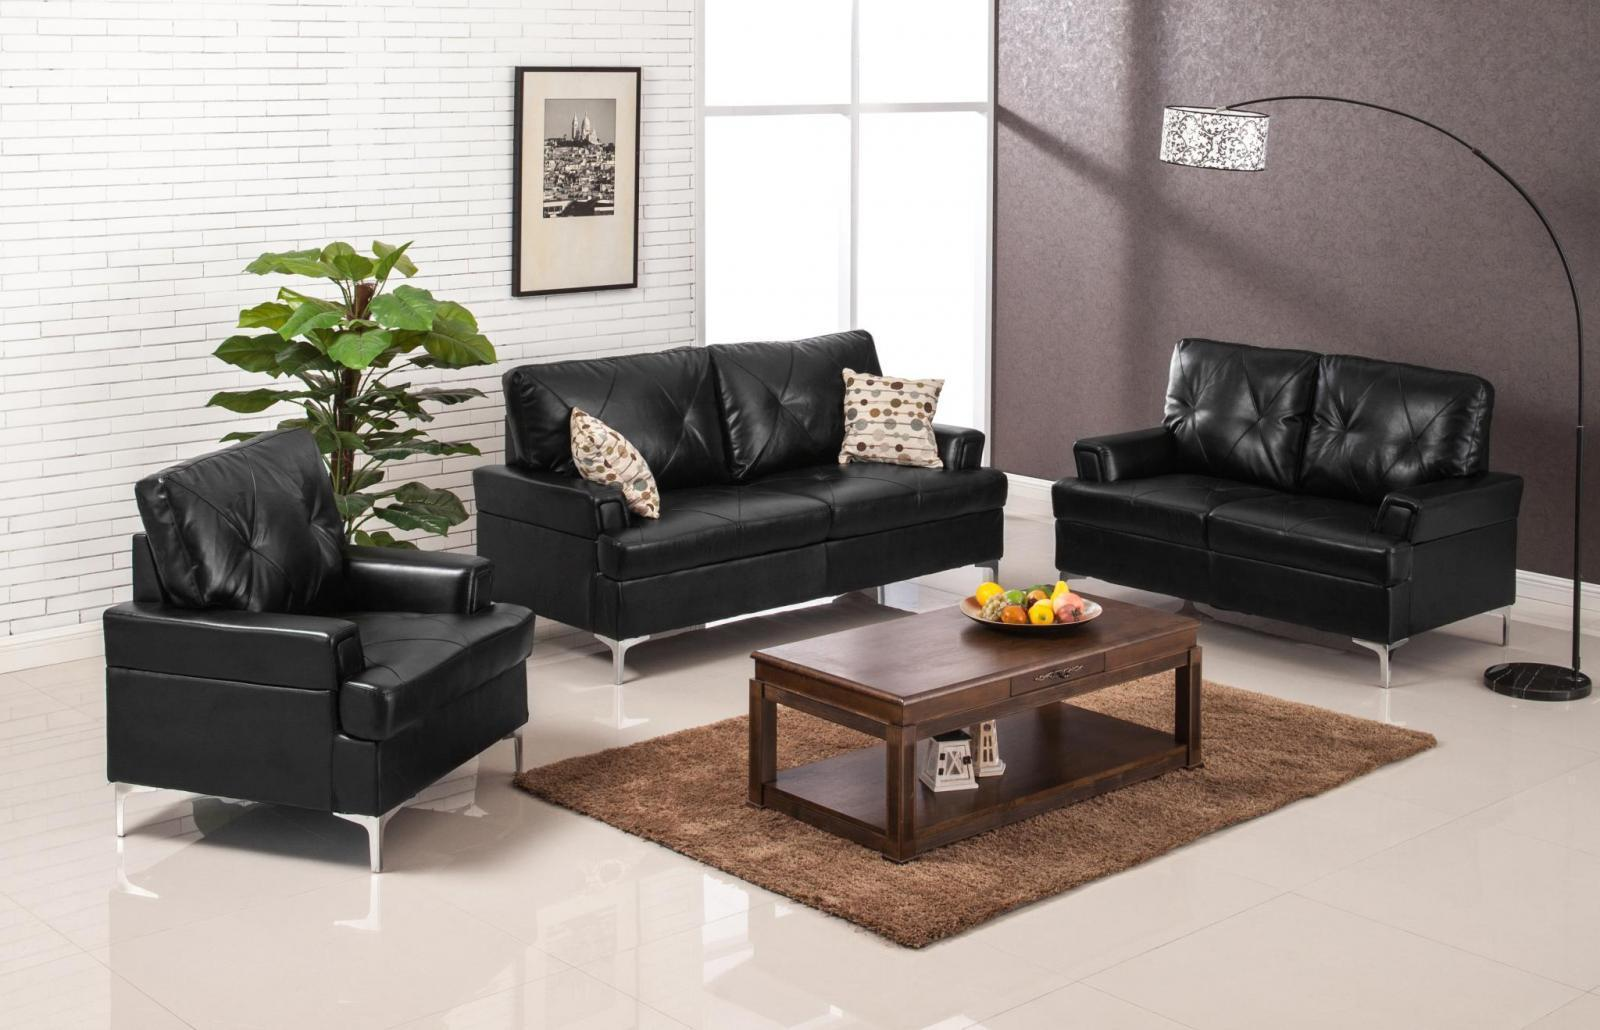 Myco furniture walker modern black bonded leather living room sofa set 3 pcs for Living room with black leather furniture